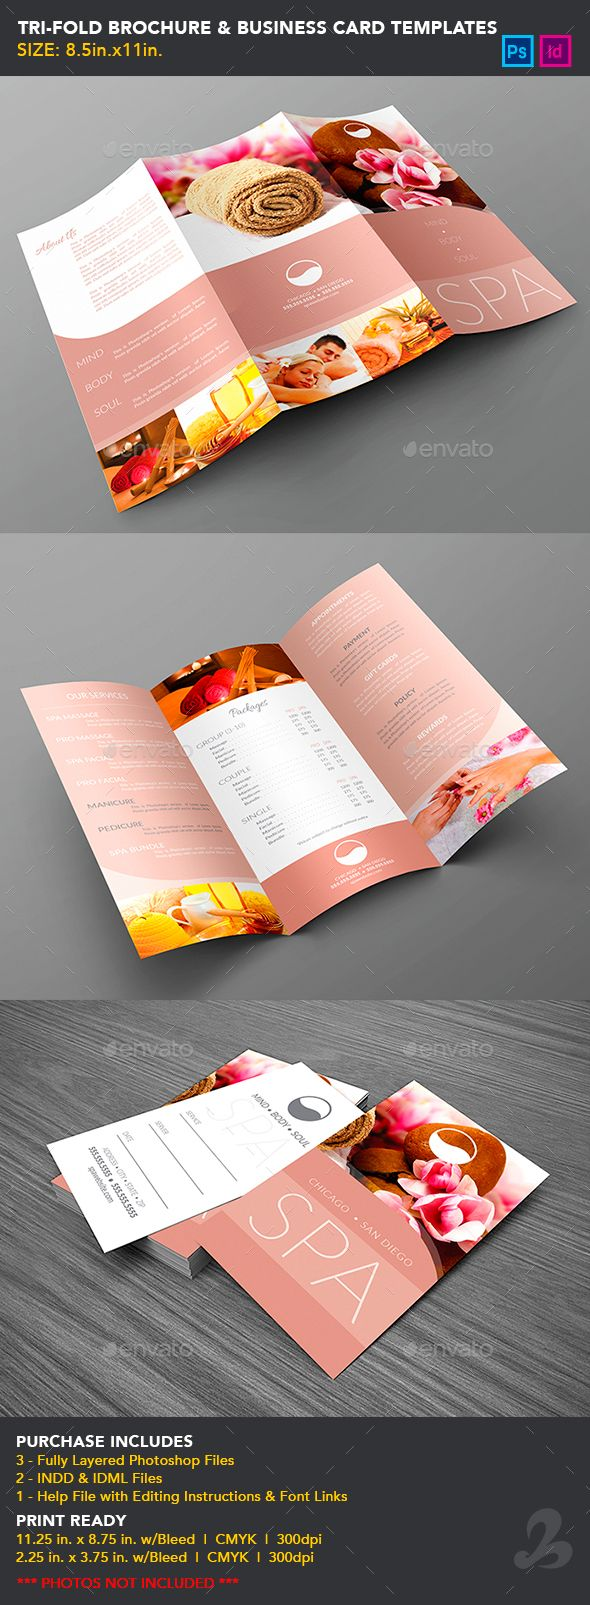 TriFold Brochure Business Card Templates Spa Tri Fold - Tri fold business card template